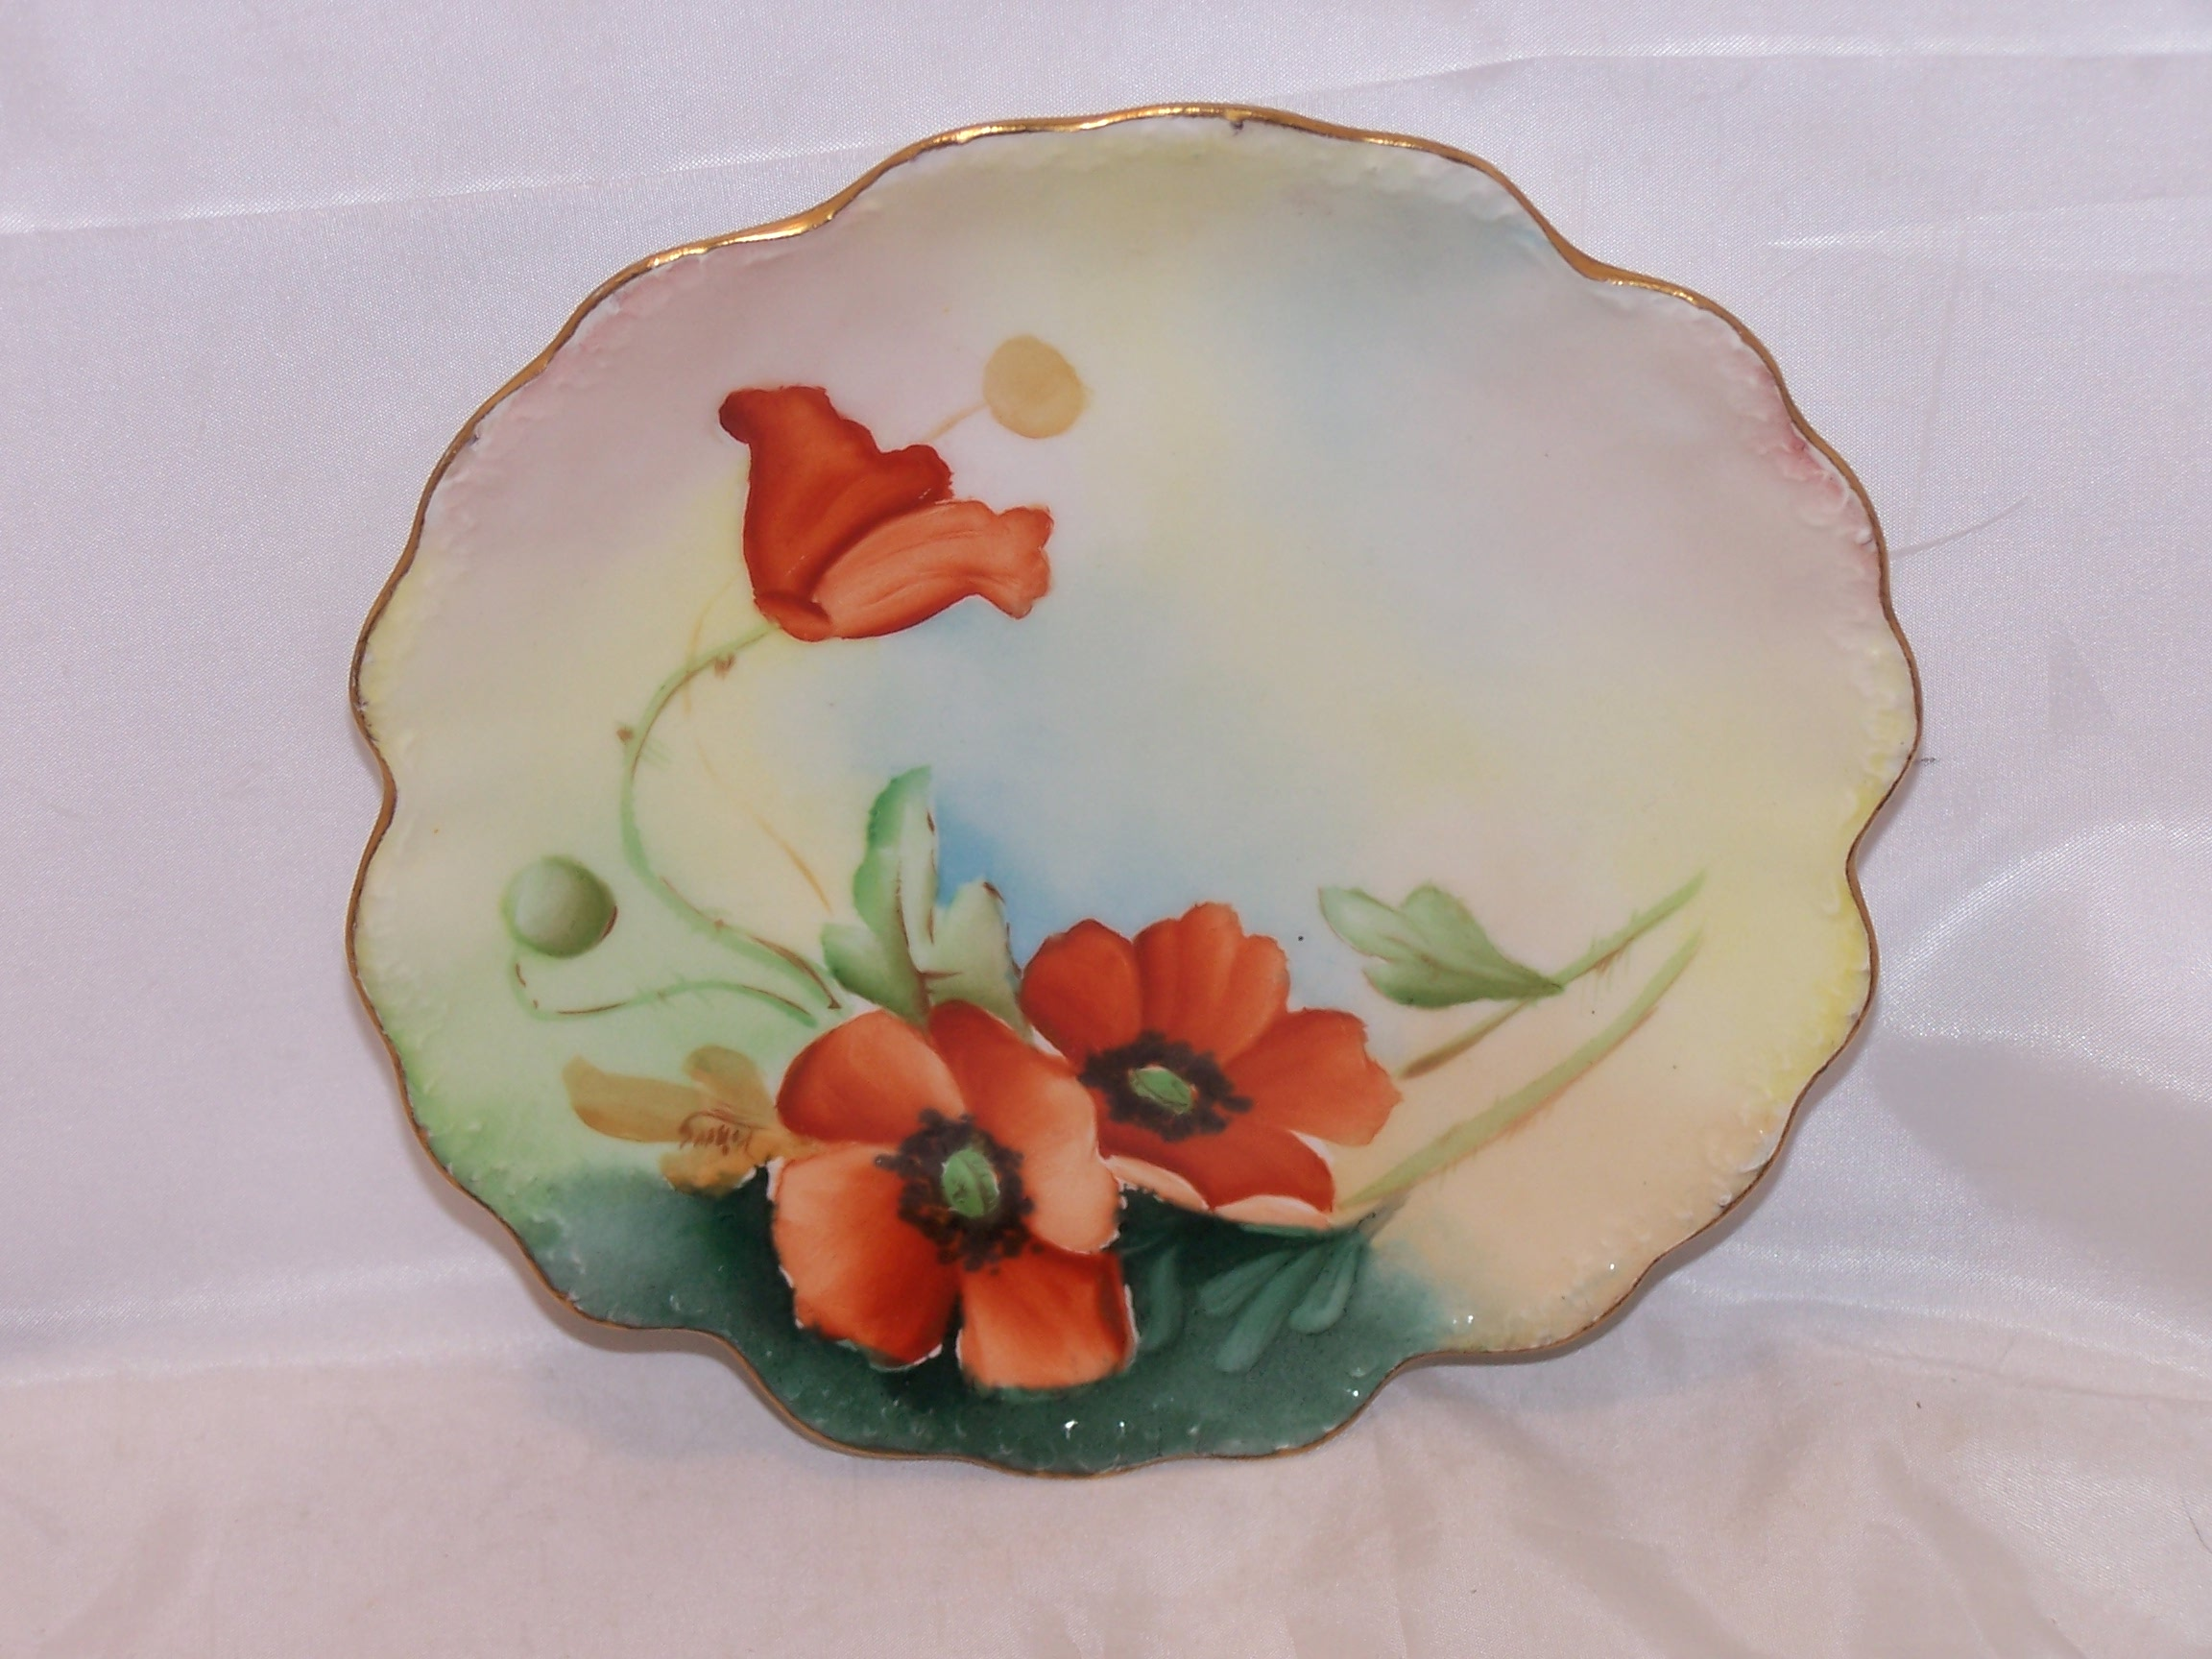 Elite France Poppy Plate, Limoges Porcelain, c 1896 to 1920